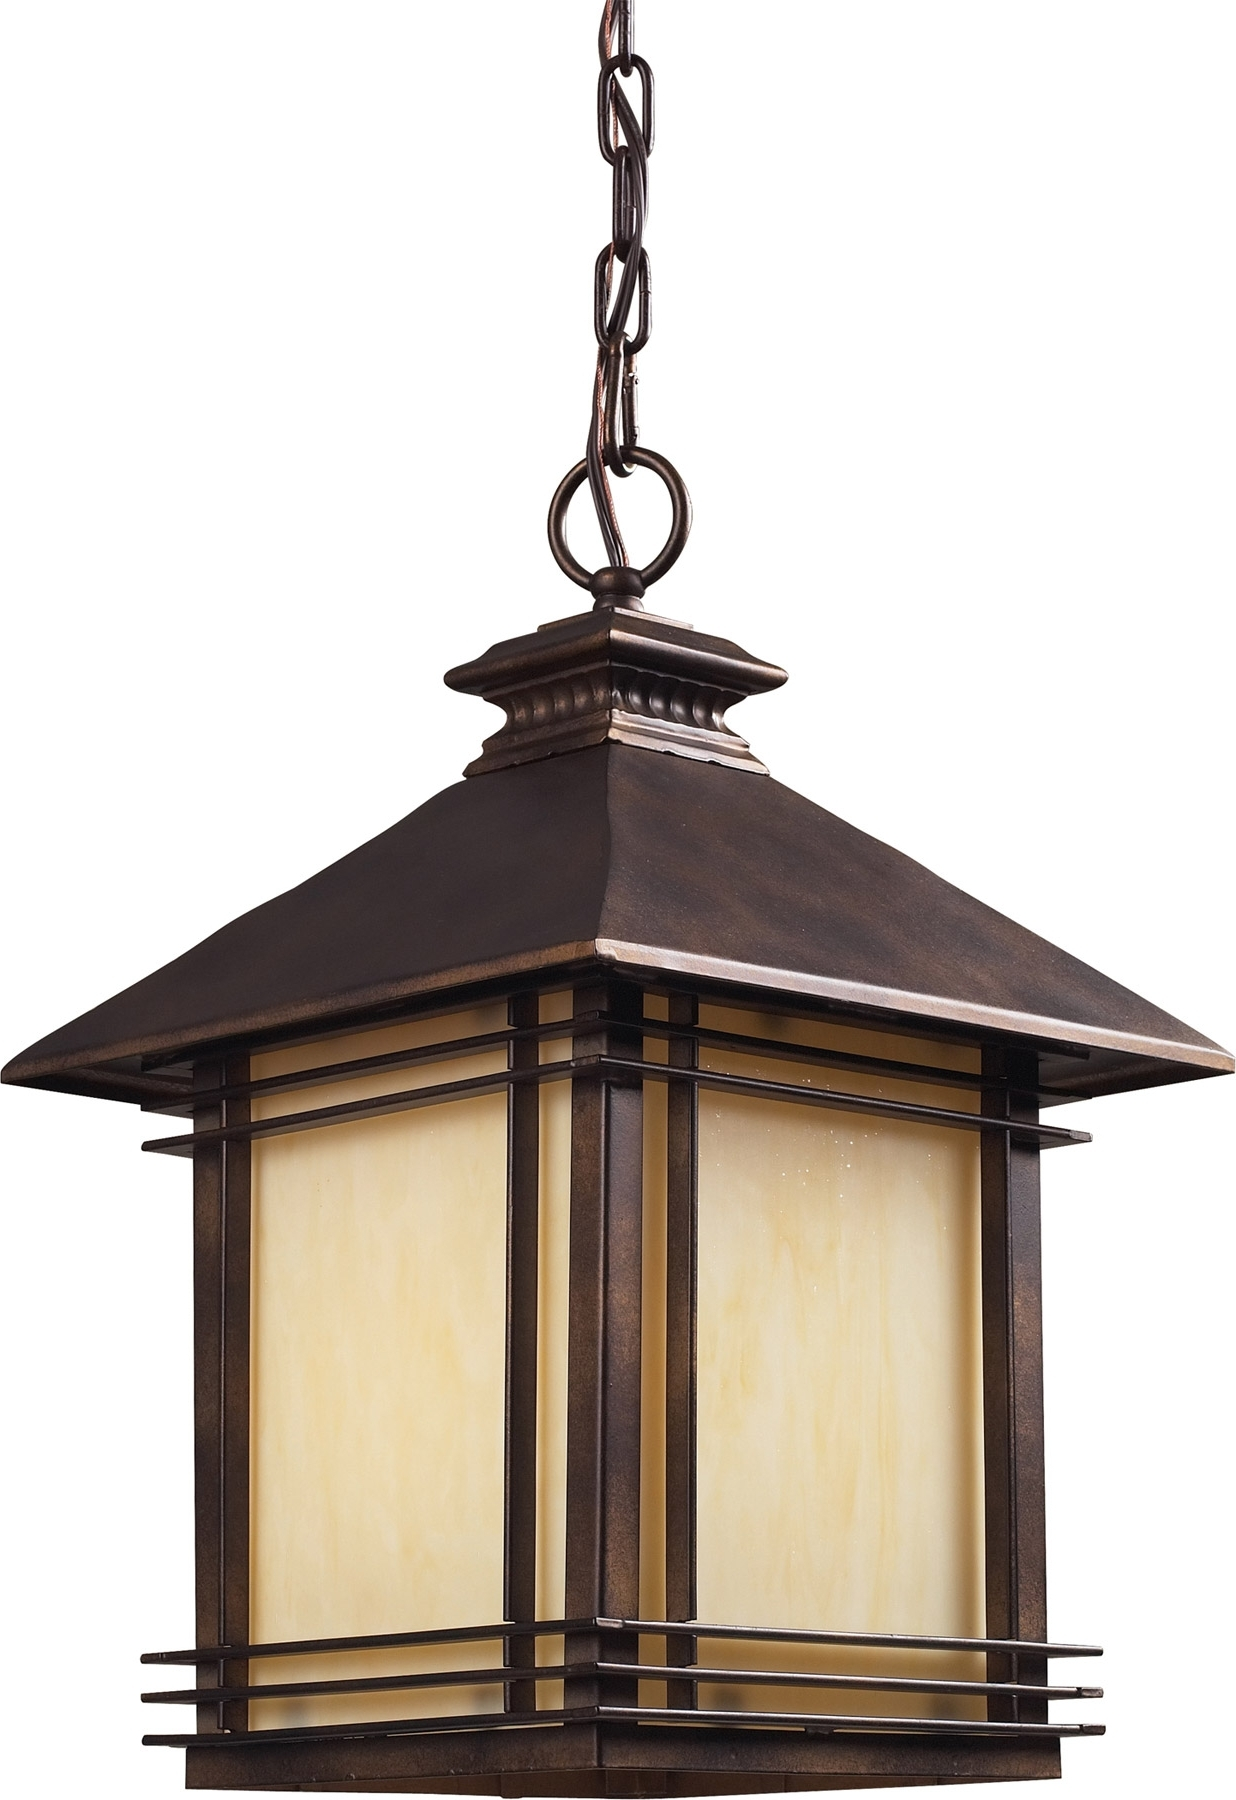 Trendy Outdoor Hanging Lanterns For Lighting 42103/1 Blackwell Outdoor Hanging Lantern (View 17 of 20)